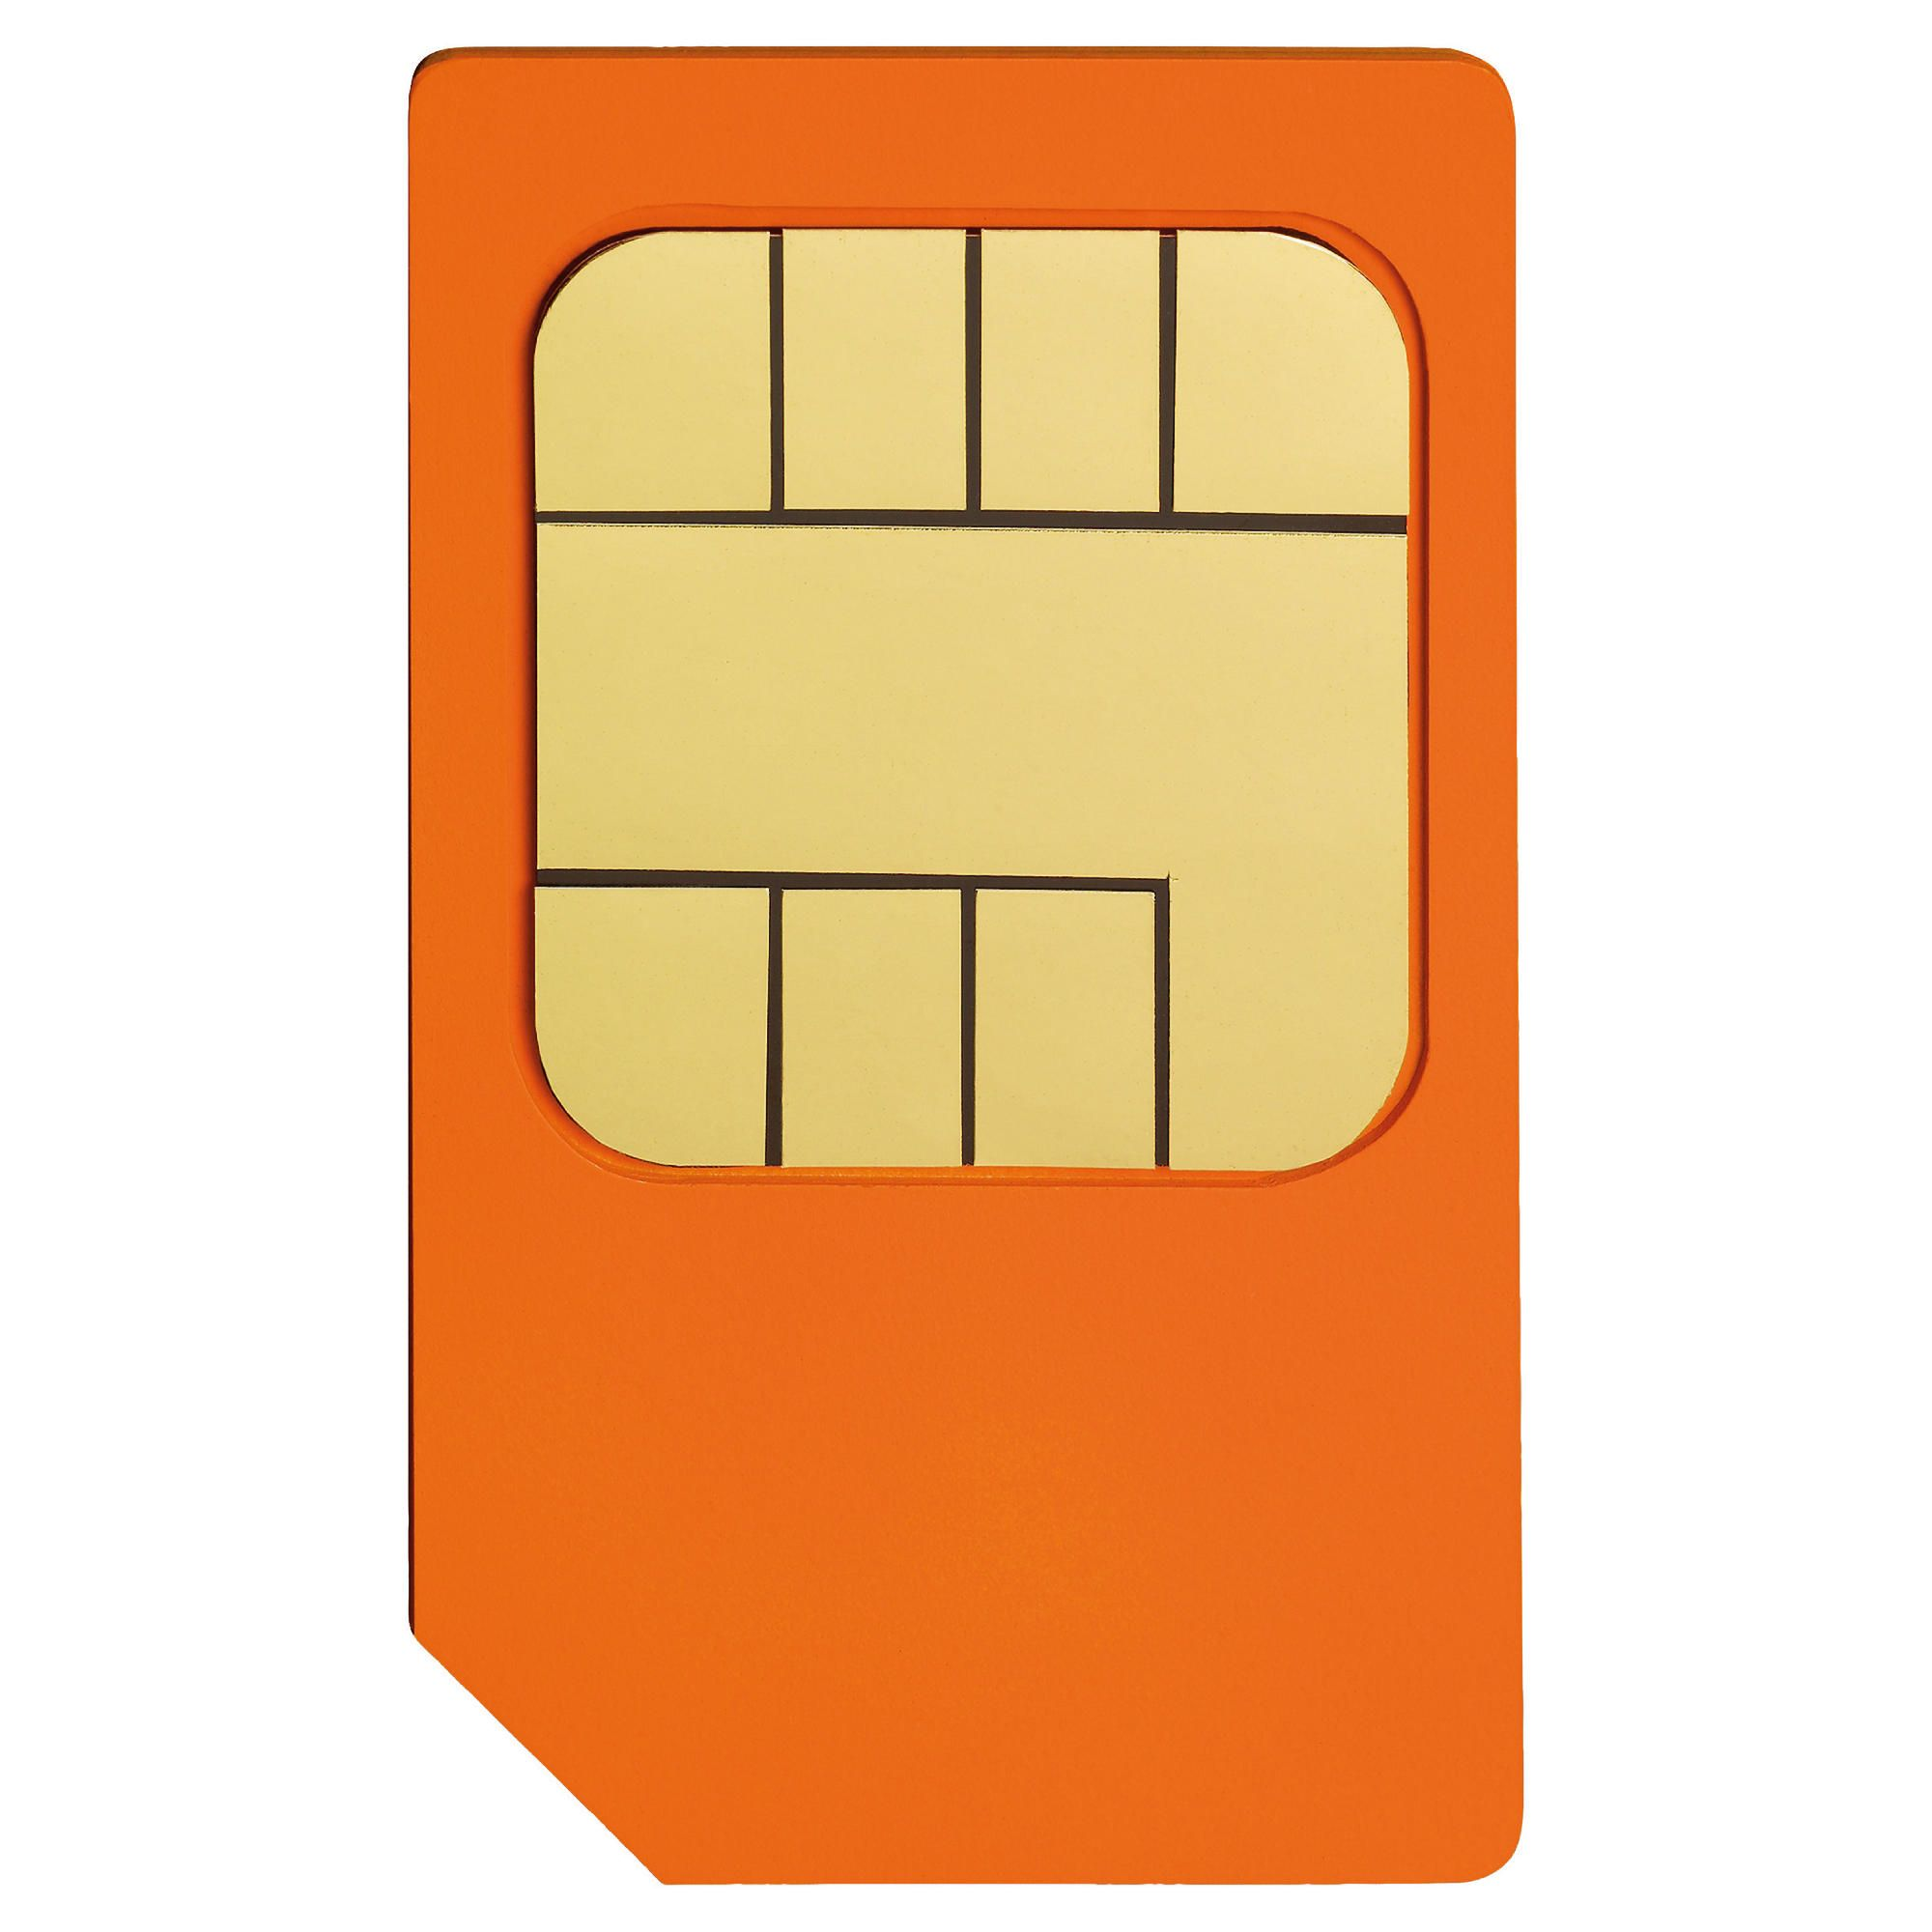 How do you activate an Orange SIM card?